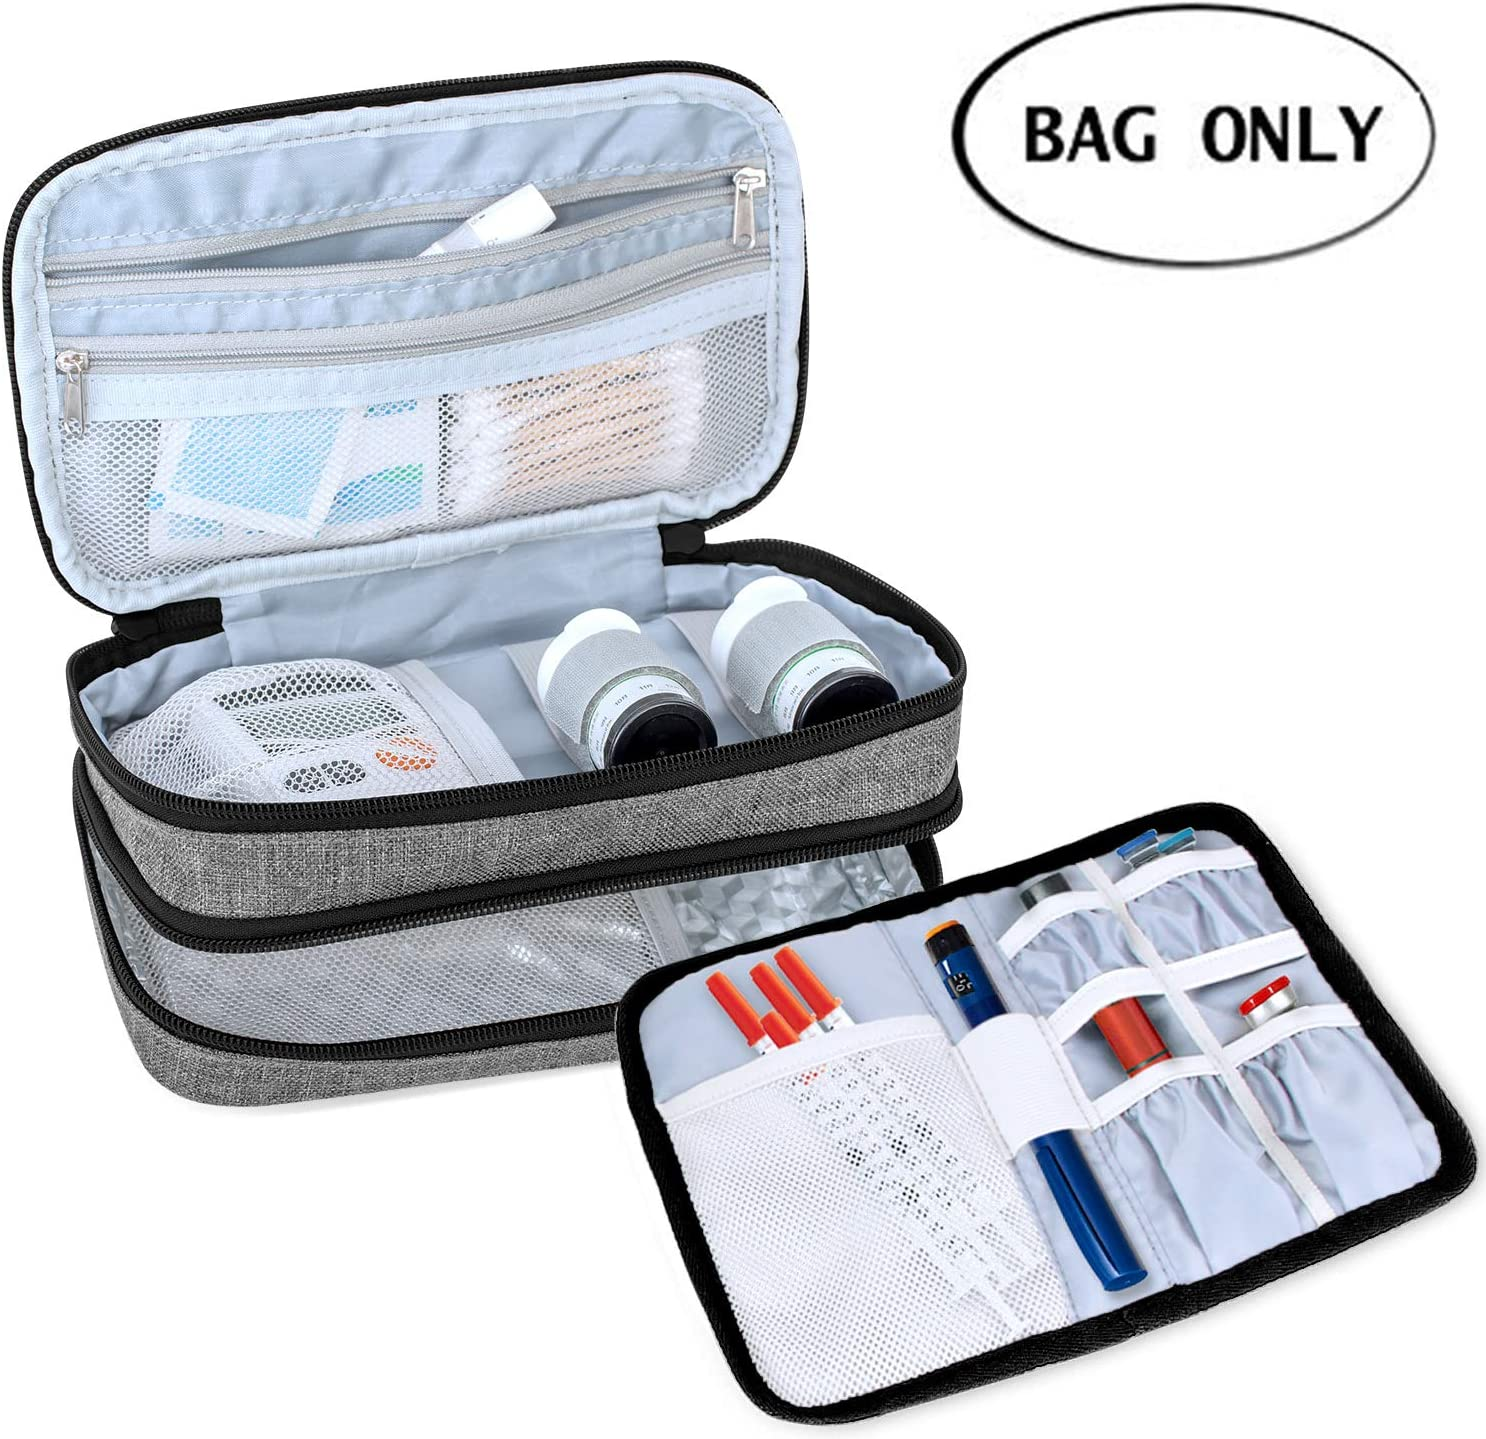 Luxja Insulin Travel Case, Double Layer Insulin Bag for Insulin Pens, Glucose Meter and Other Diabetic Supplies (Bag Only), Gray